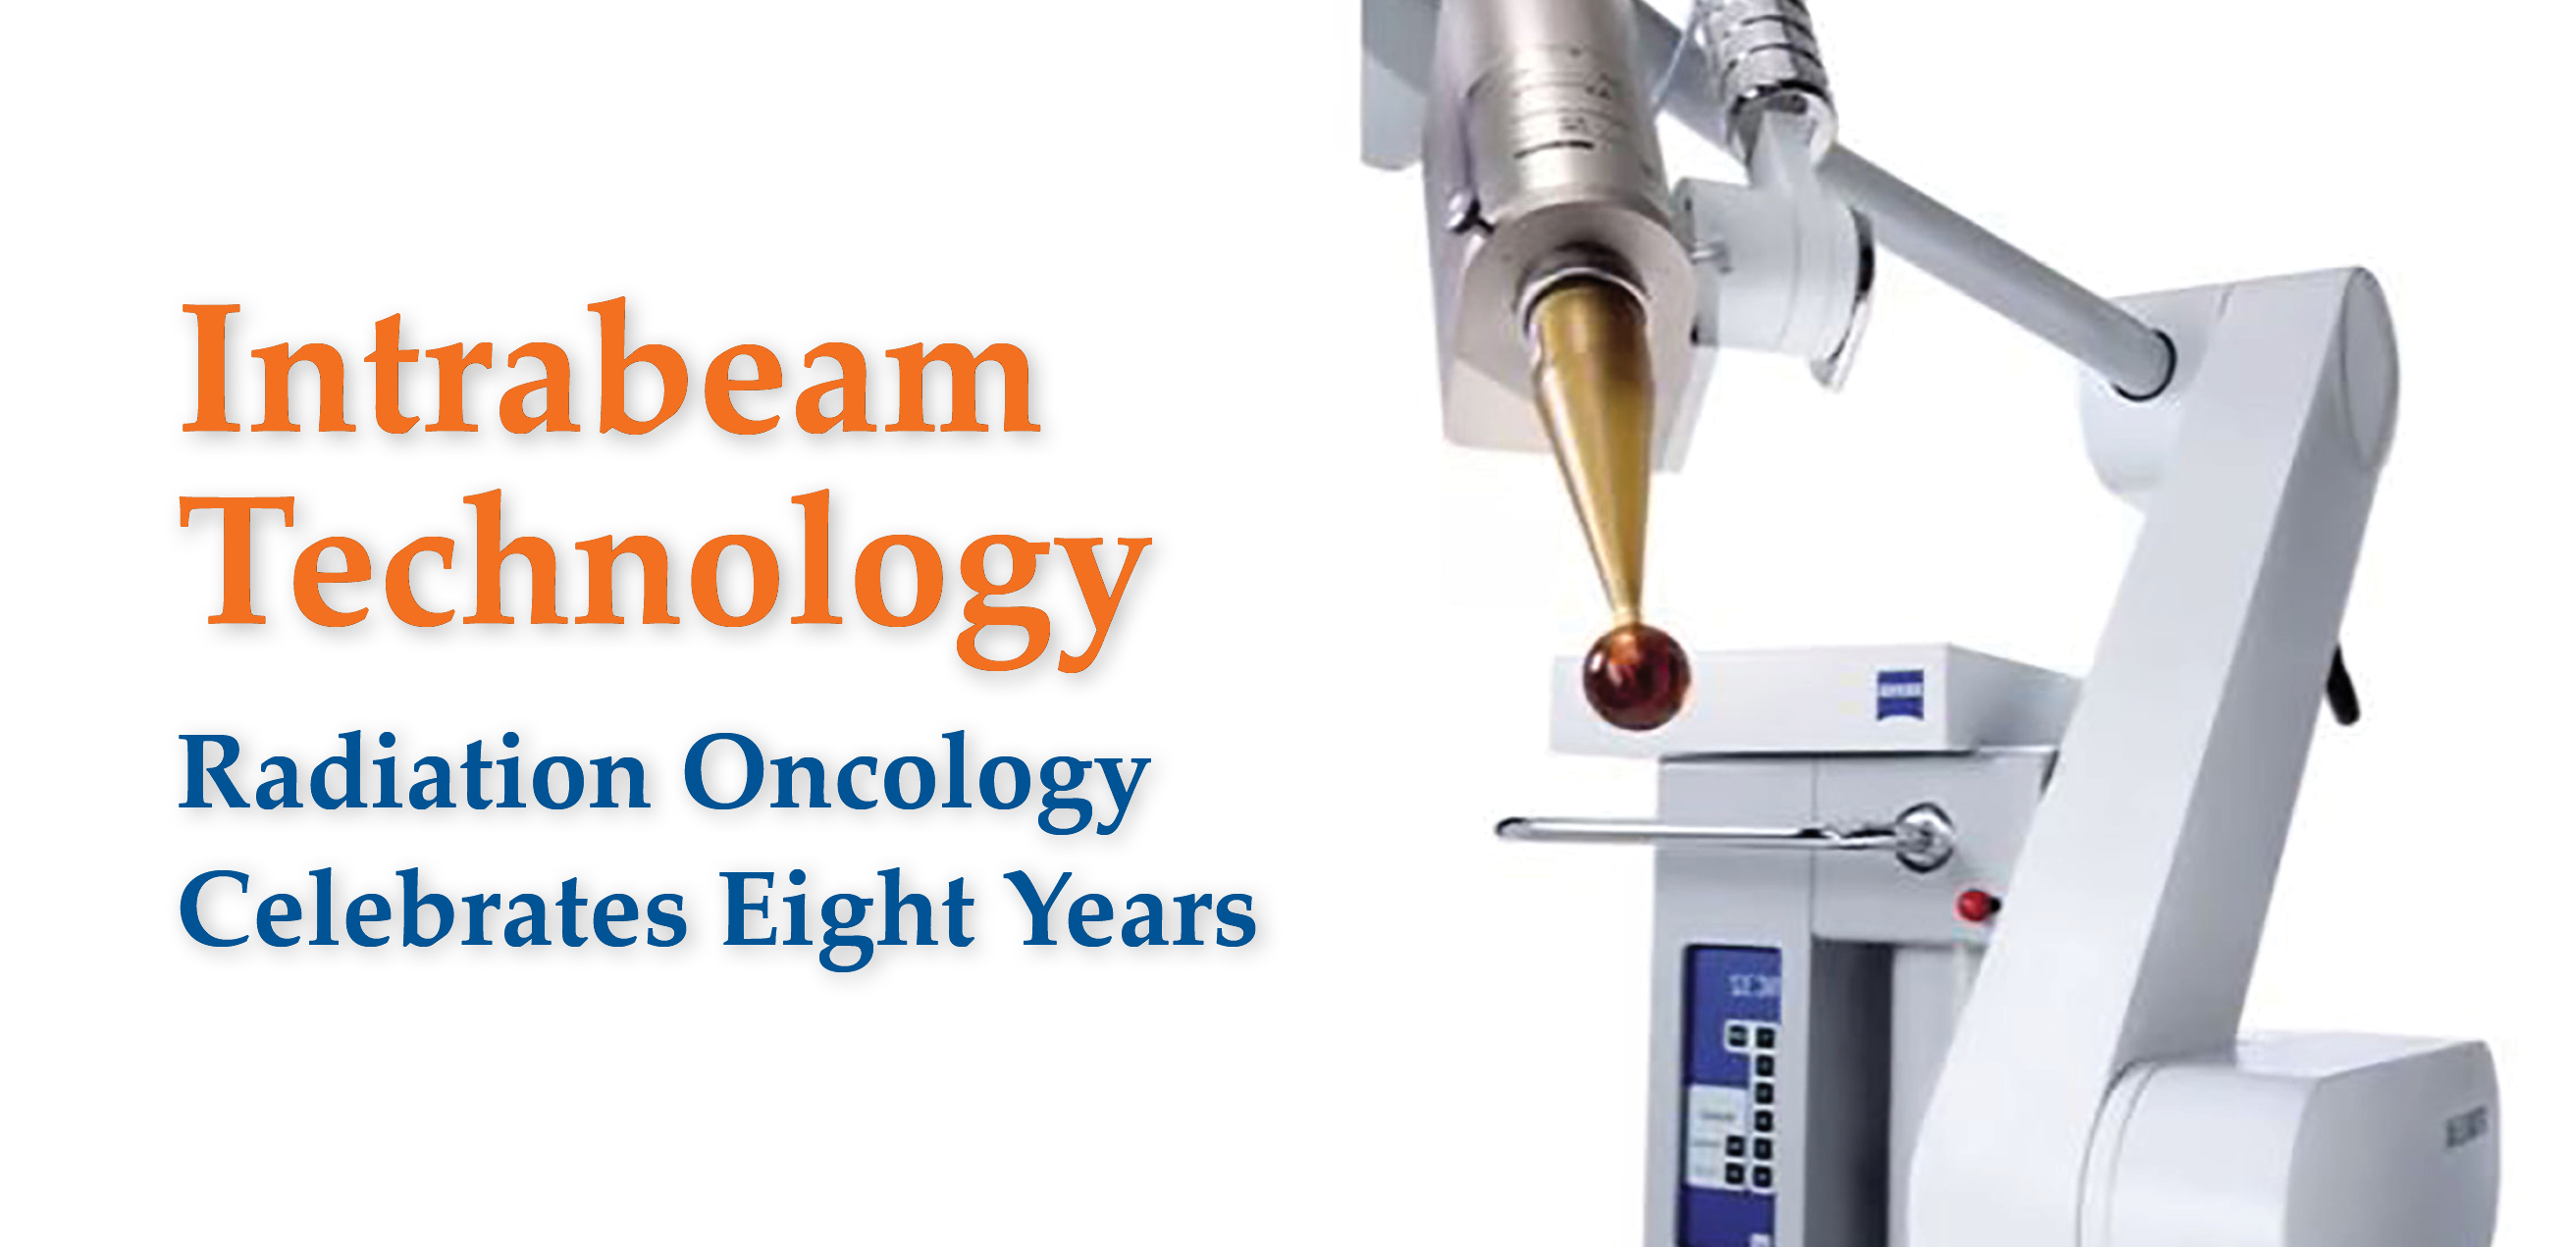 Radiation Oncology Celebrates Eight Years Of Intrabeam